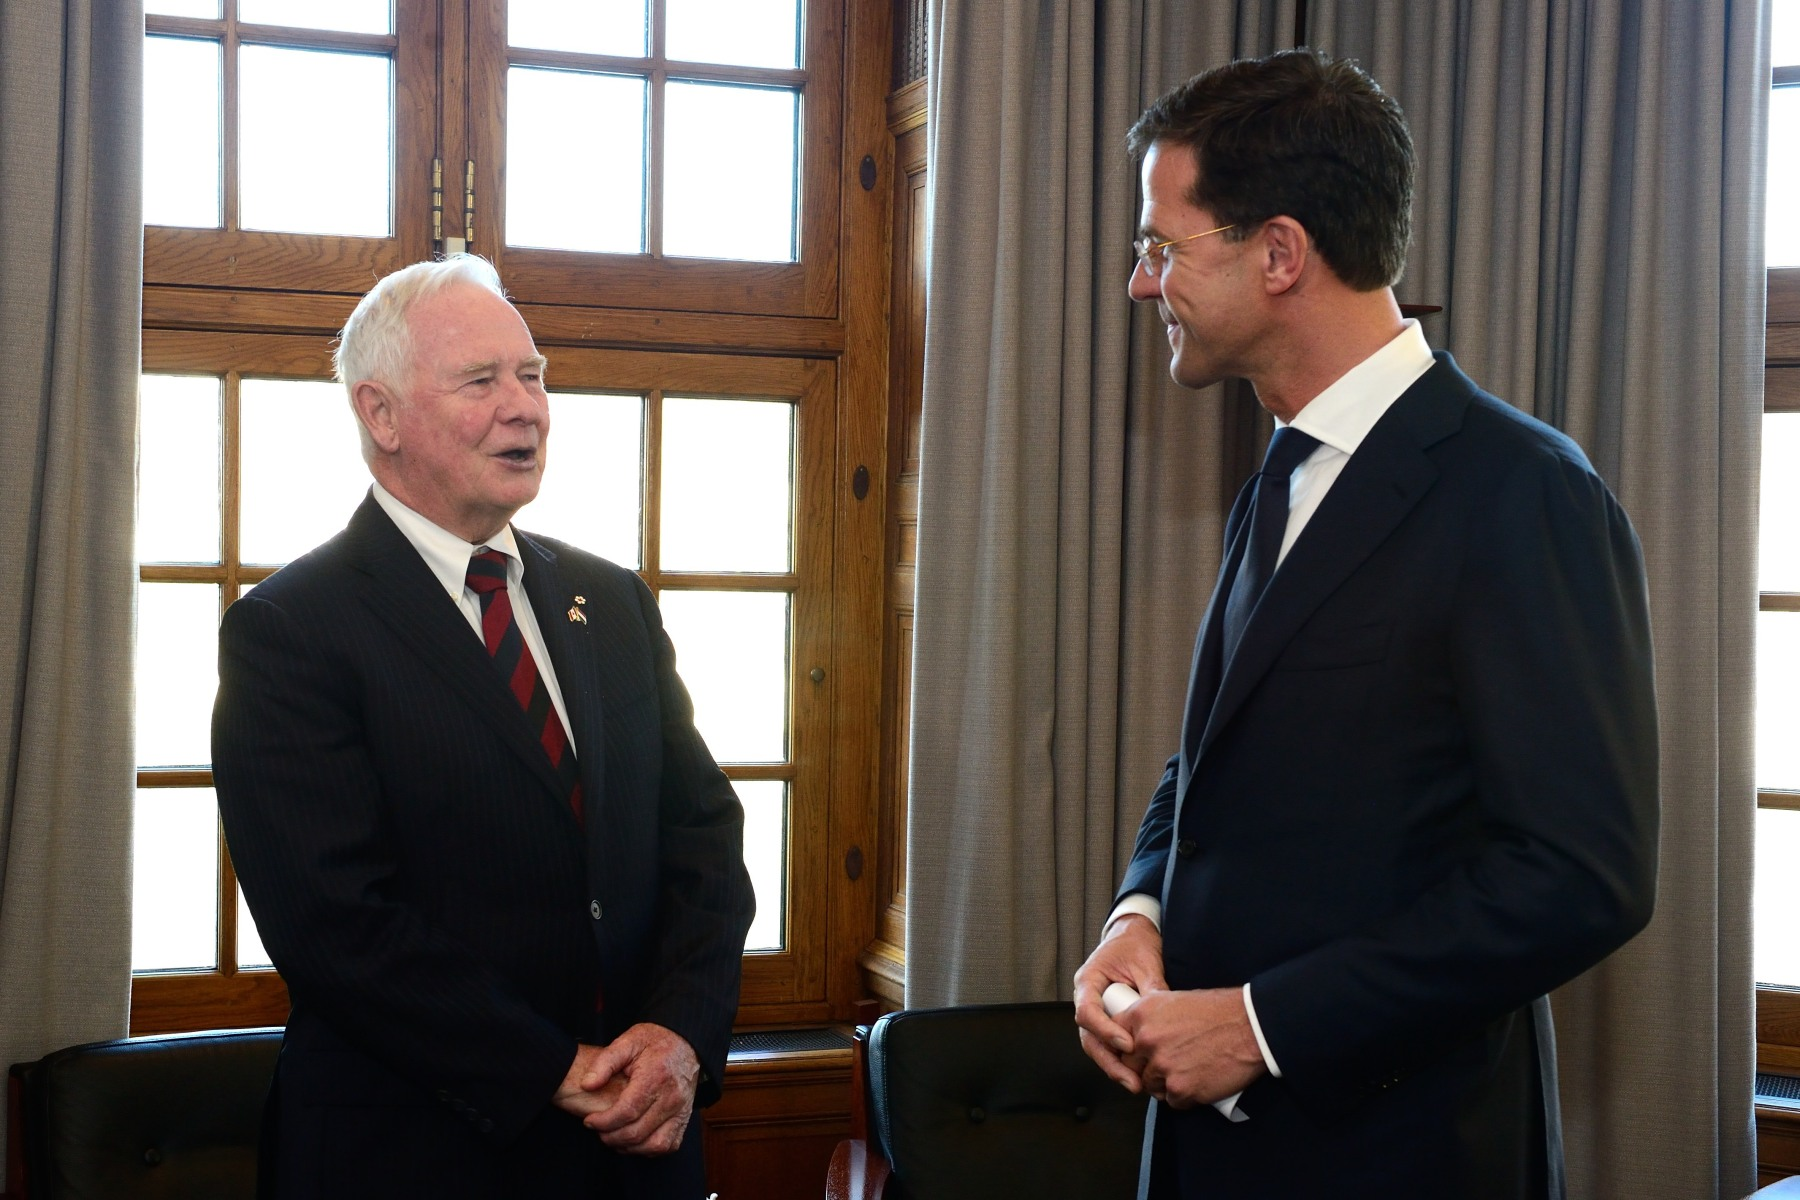 The Governor General also met with Prime Minister Mark Rutte to discuss issues of common interest to Canada and the Netherlands and the strong bilateral relationships between our two countries.